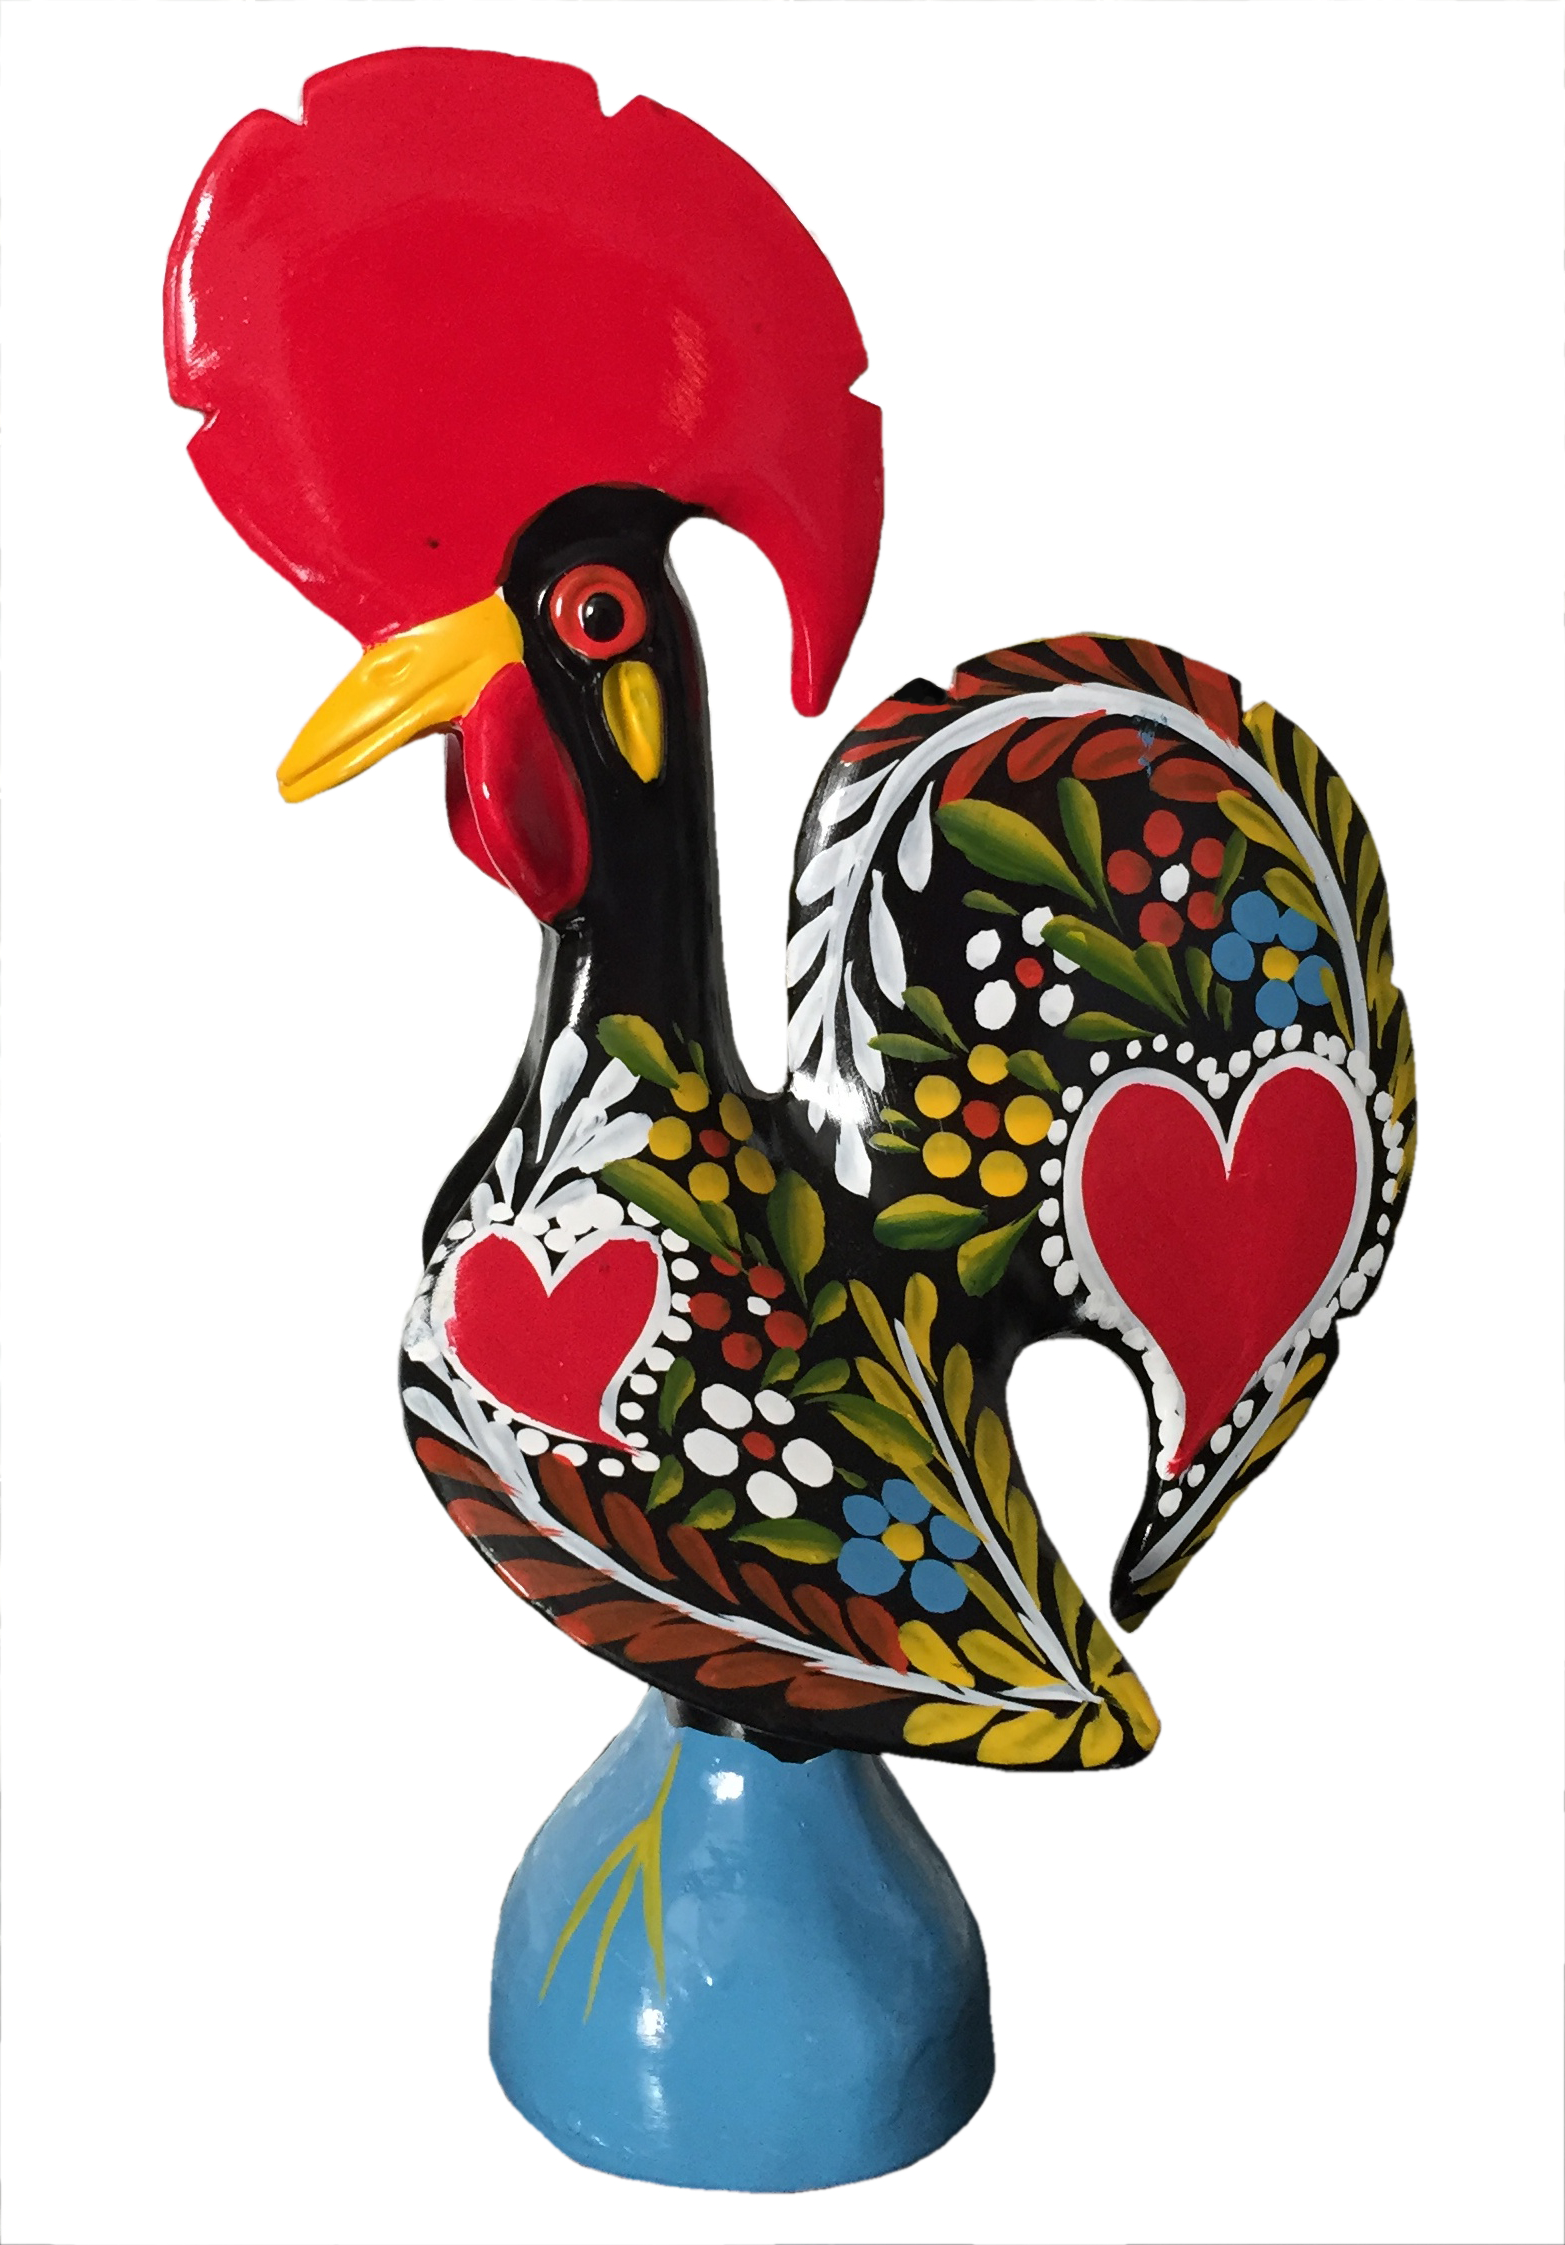 Drawn rooster gallic rooster Order Today! Barcelos com com